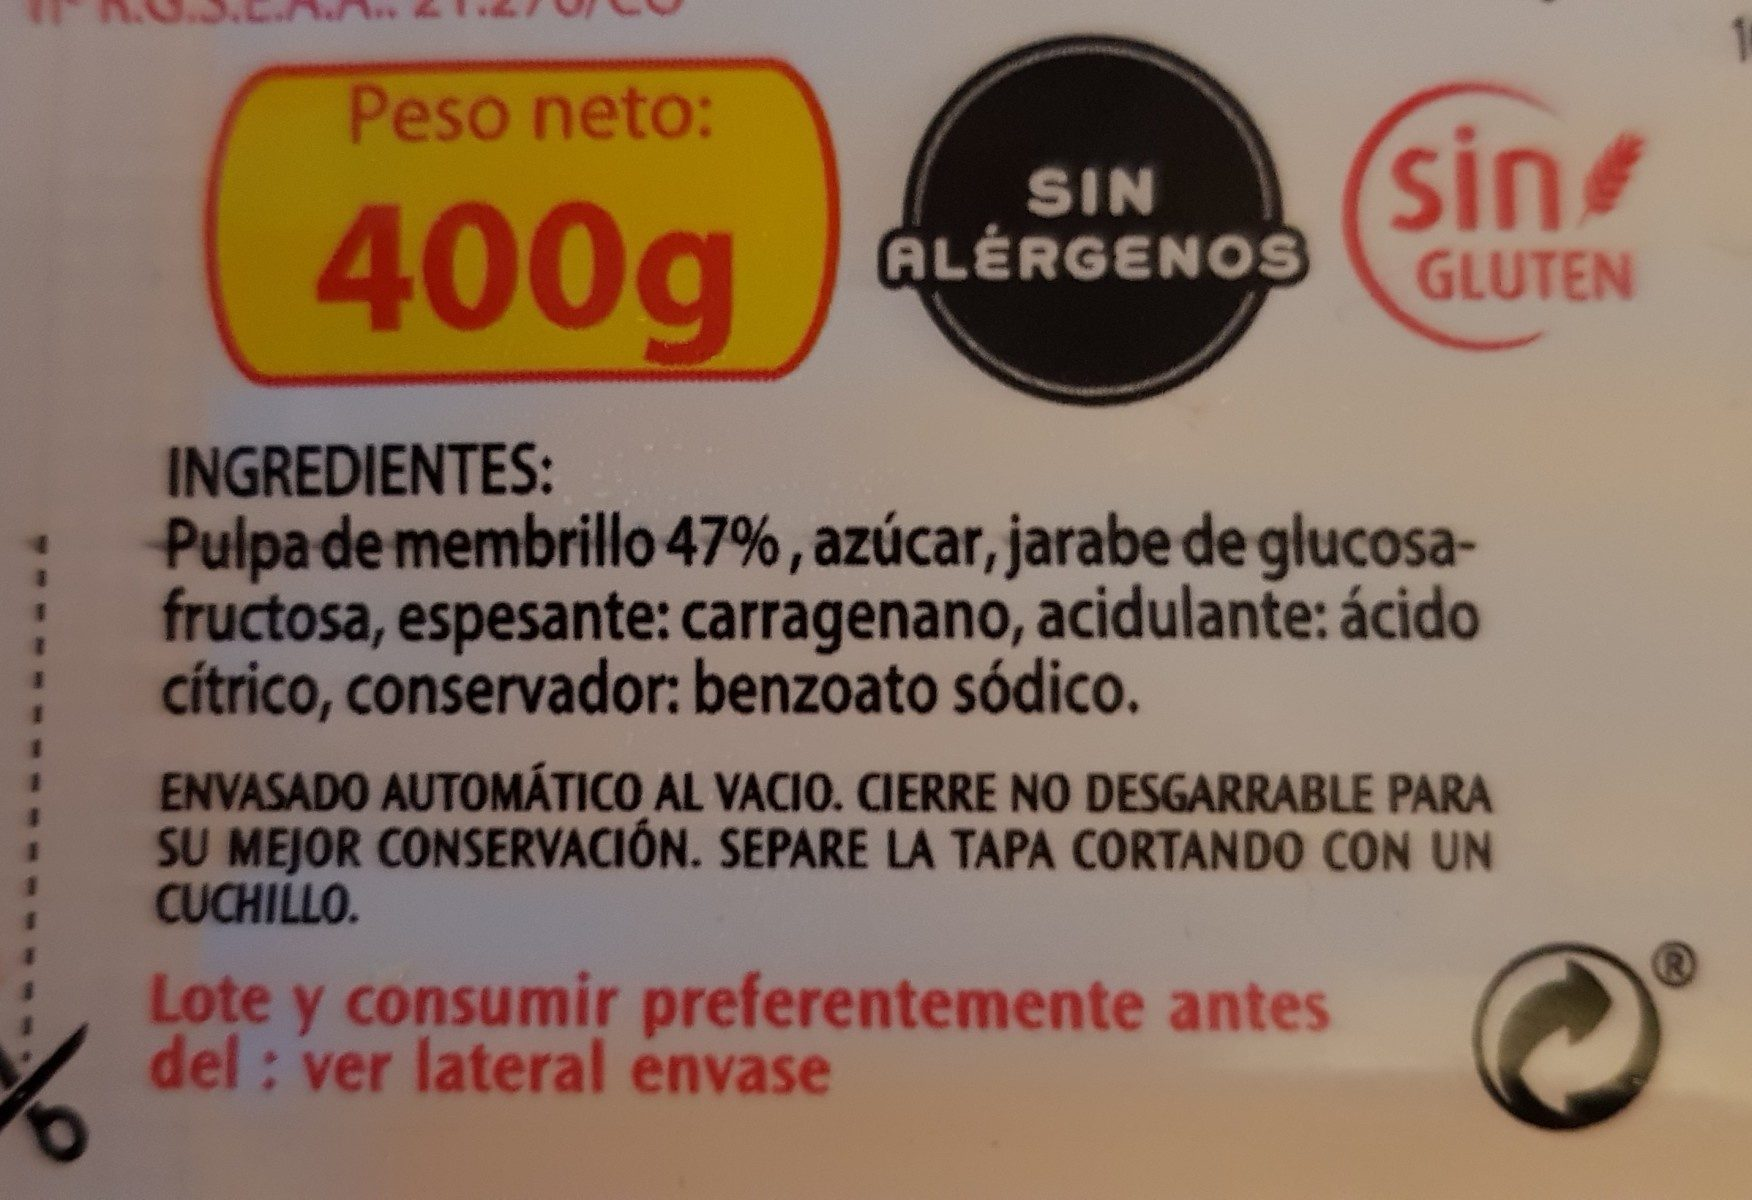 Dulce de membrillo primera pack 2 estuche 200 g - Ingredientes - fr